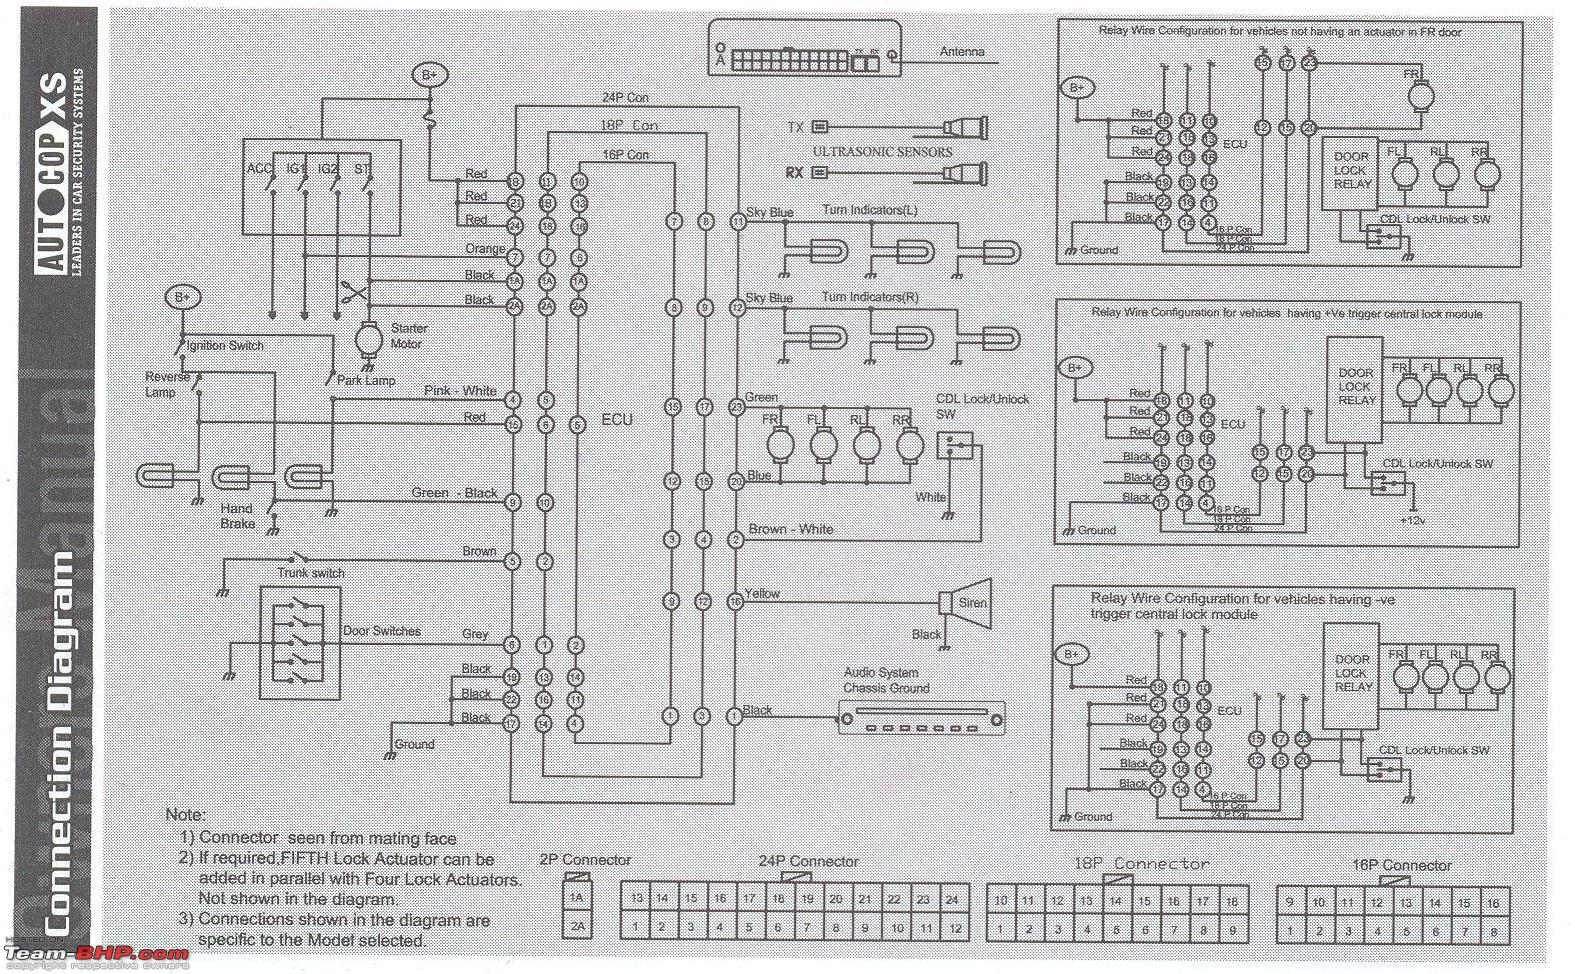 880602d1328028546 autocop xs manual wiring diagram image 5 maruti 800 wiring diagram pdf maruti alto lxi wiring electrical Electric Fan Wiring Diagram at suagrazia.org